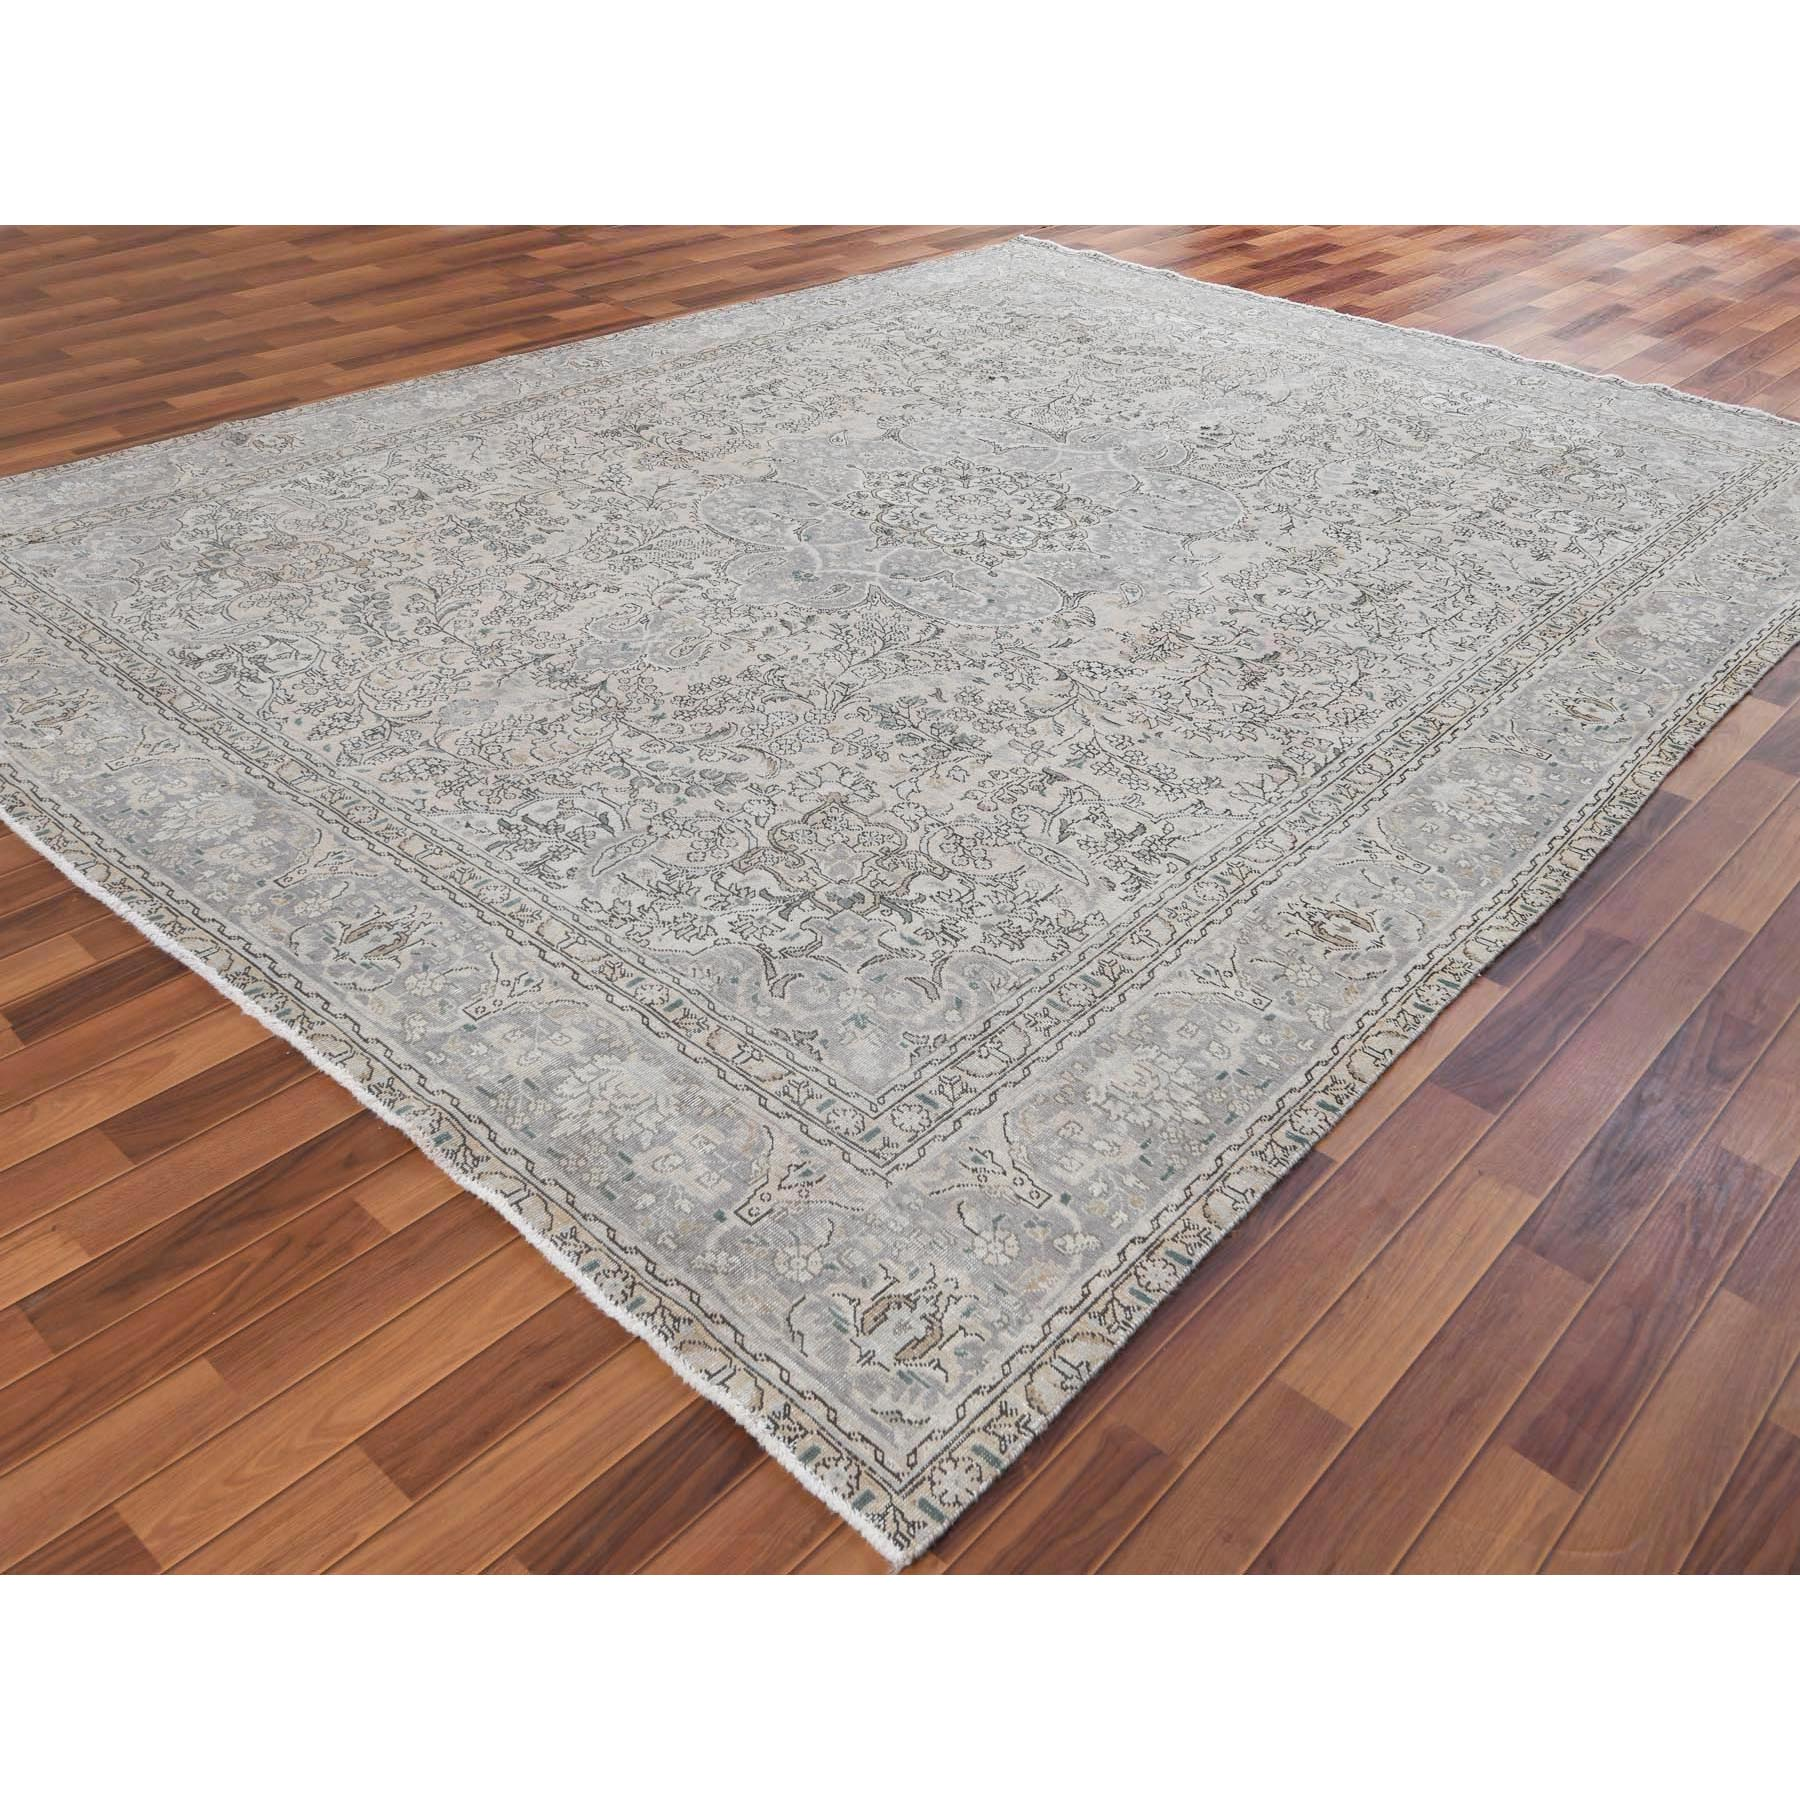 """9'8""""x12'6"""" Tan Color Persian Tabriz With Medallion Design Old Sheared Low Shabby Chic Hand Knotted Natural Wool Clean Oriental Rug"""